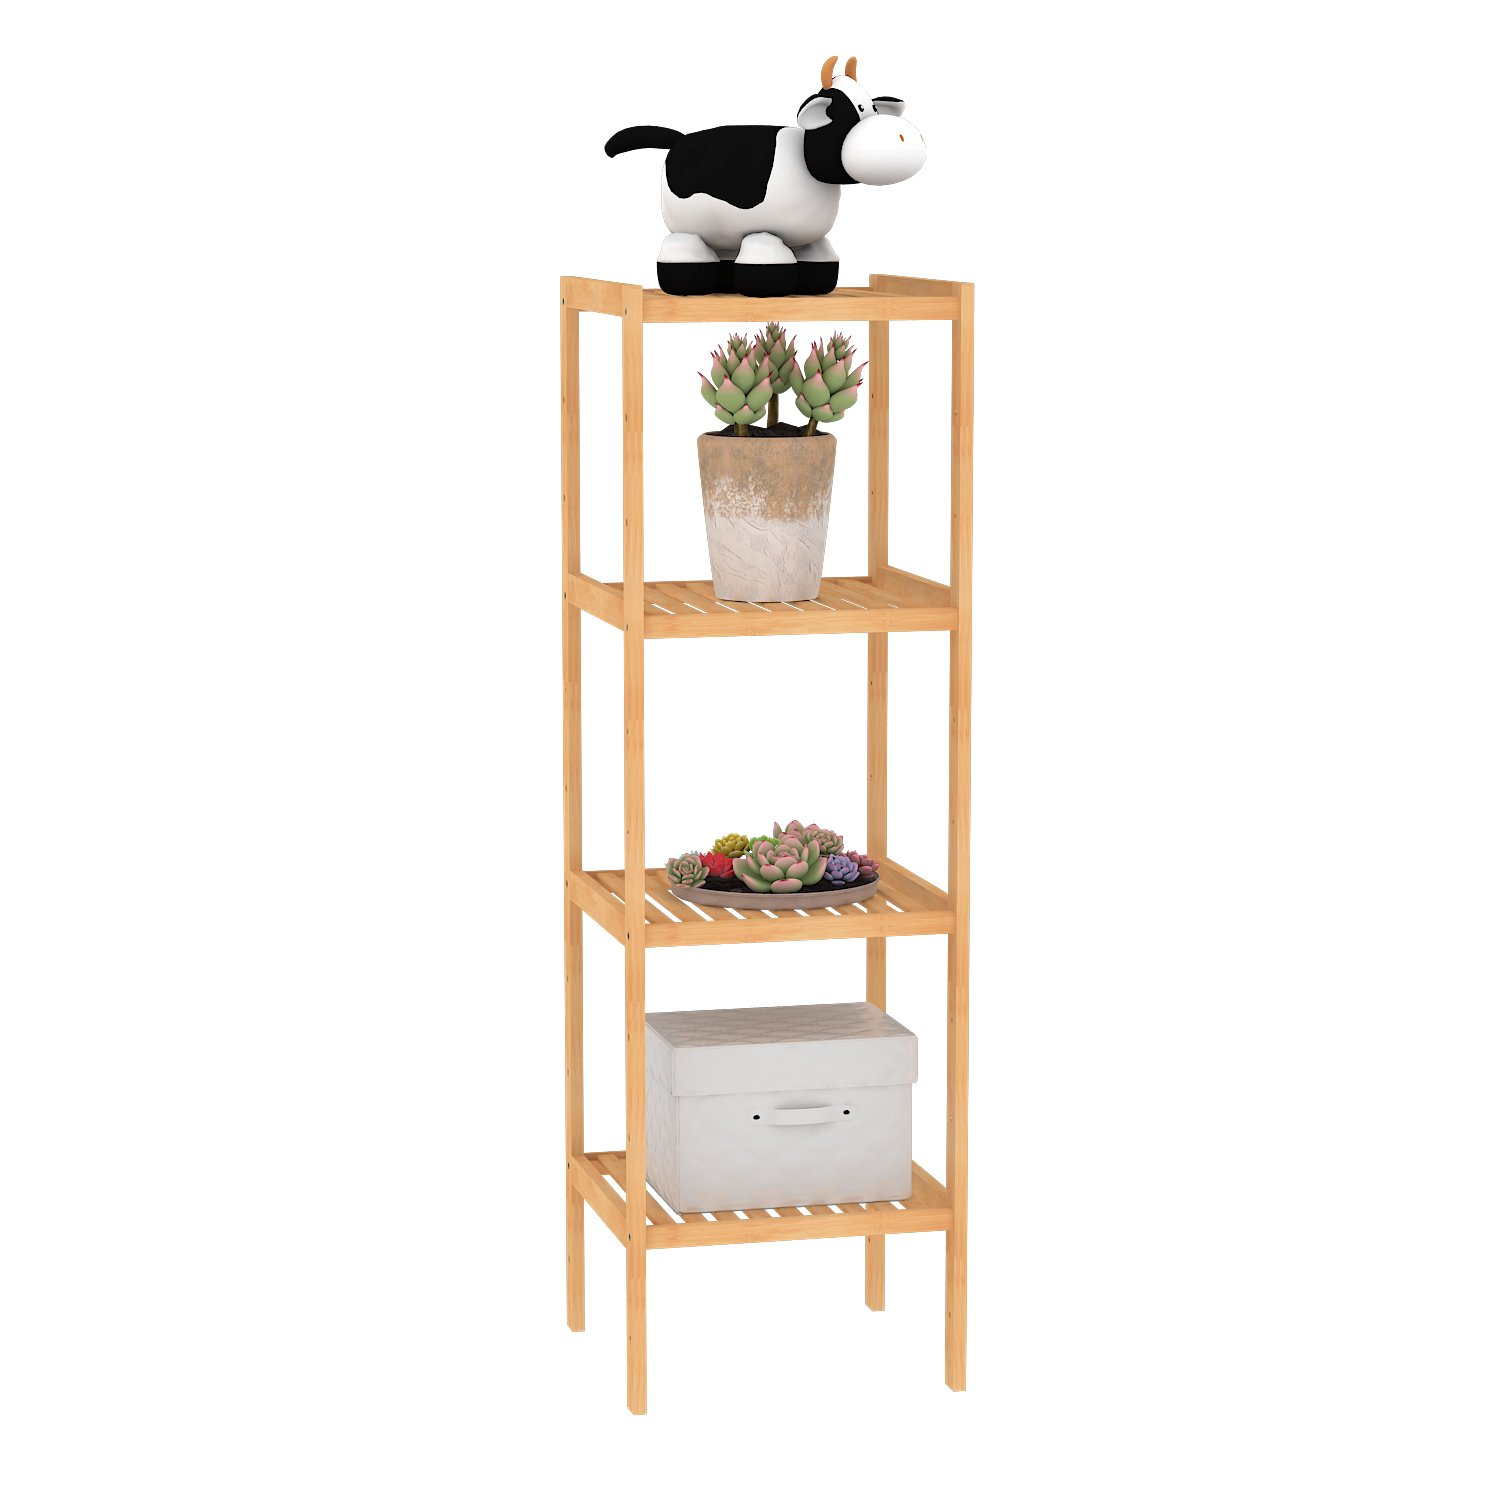 LIMAM Bamboo Shelf Bathroom Rack Plant Display Stand Storage Rack Shelving Wood Bookcase Shelf (33cm 4 tier)